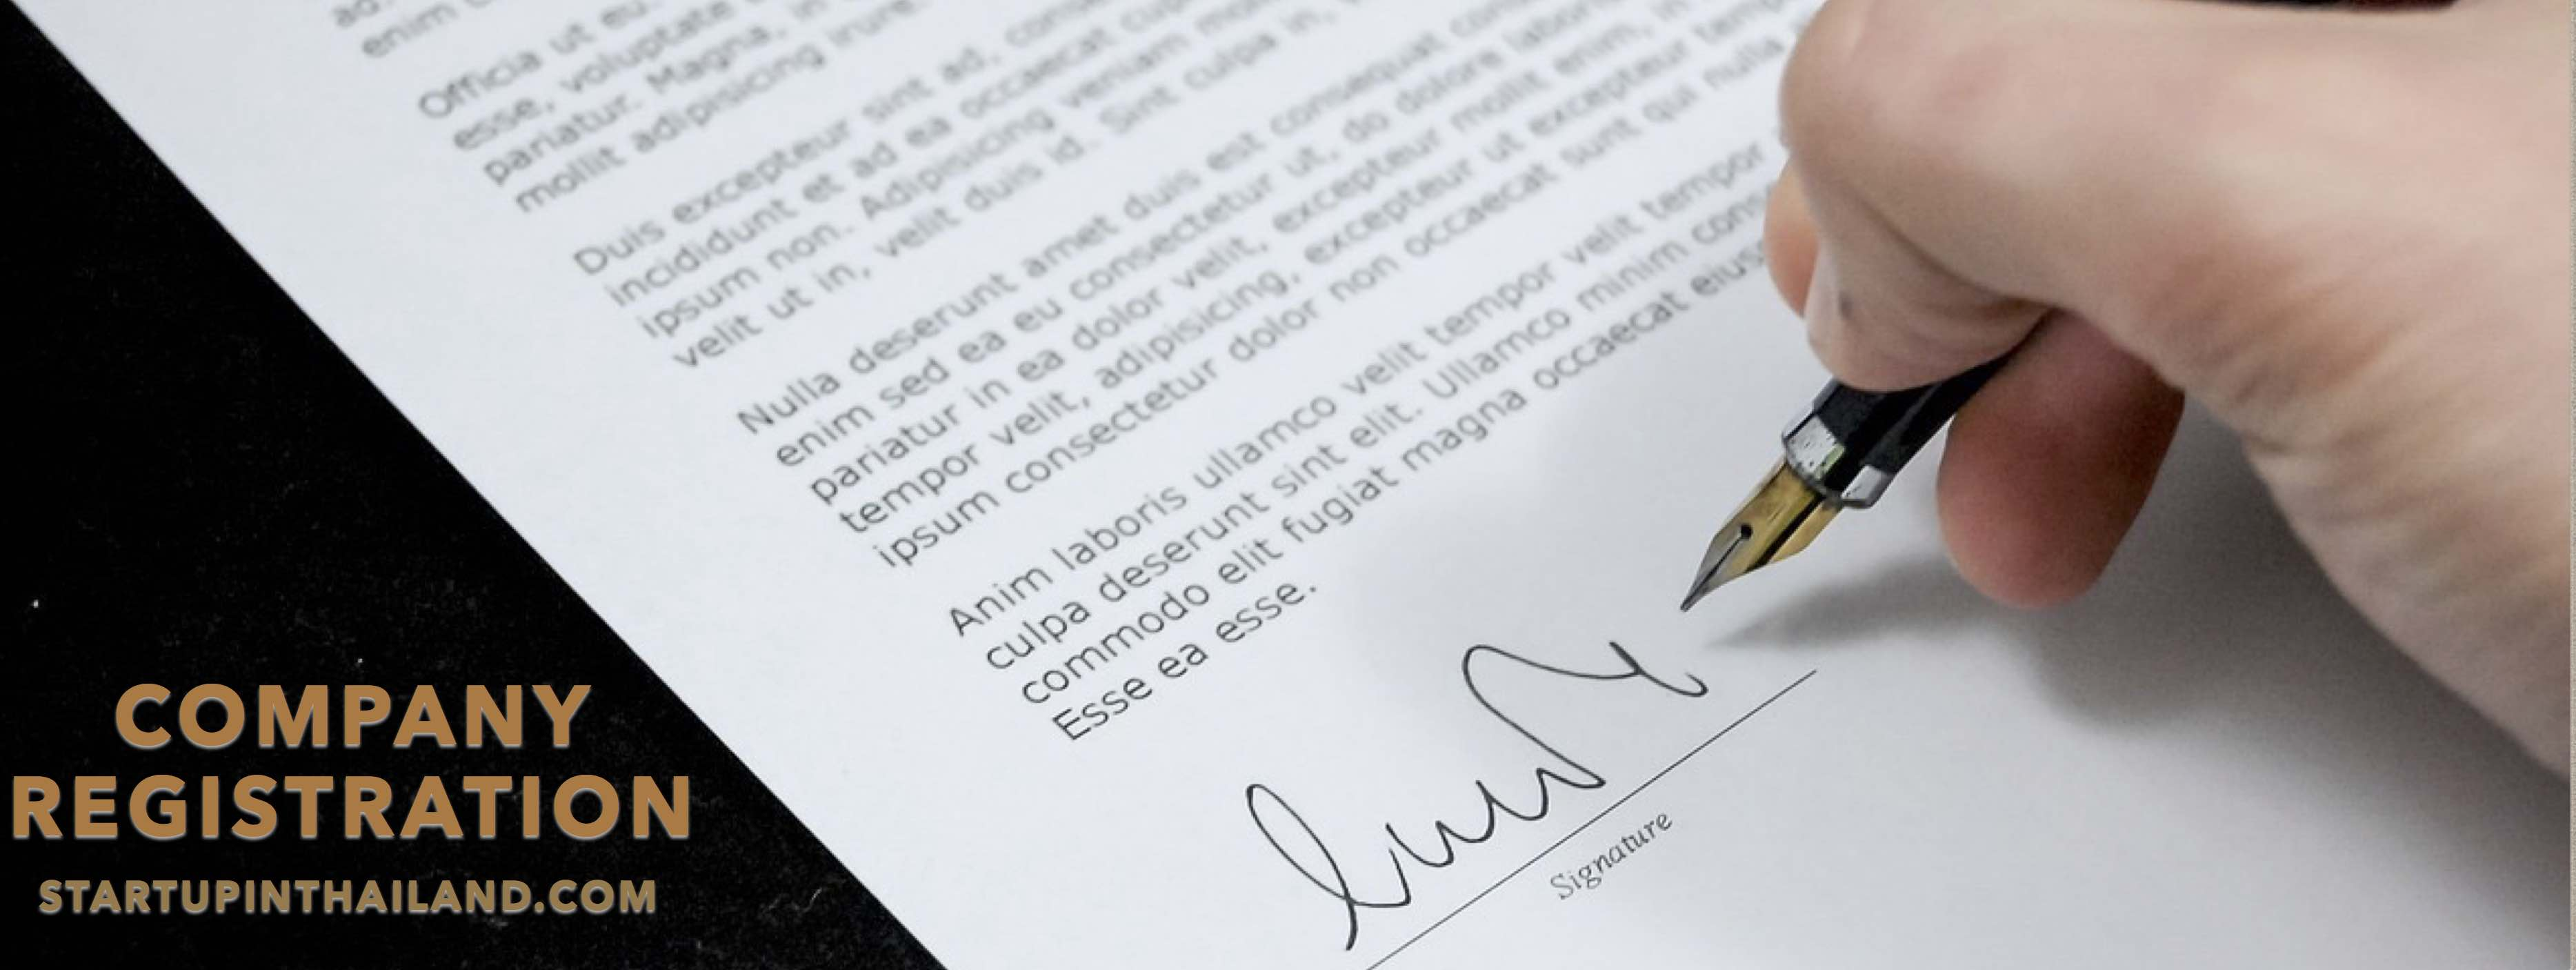 Document paper form signed by a right hand holding a black fountain pen